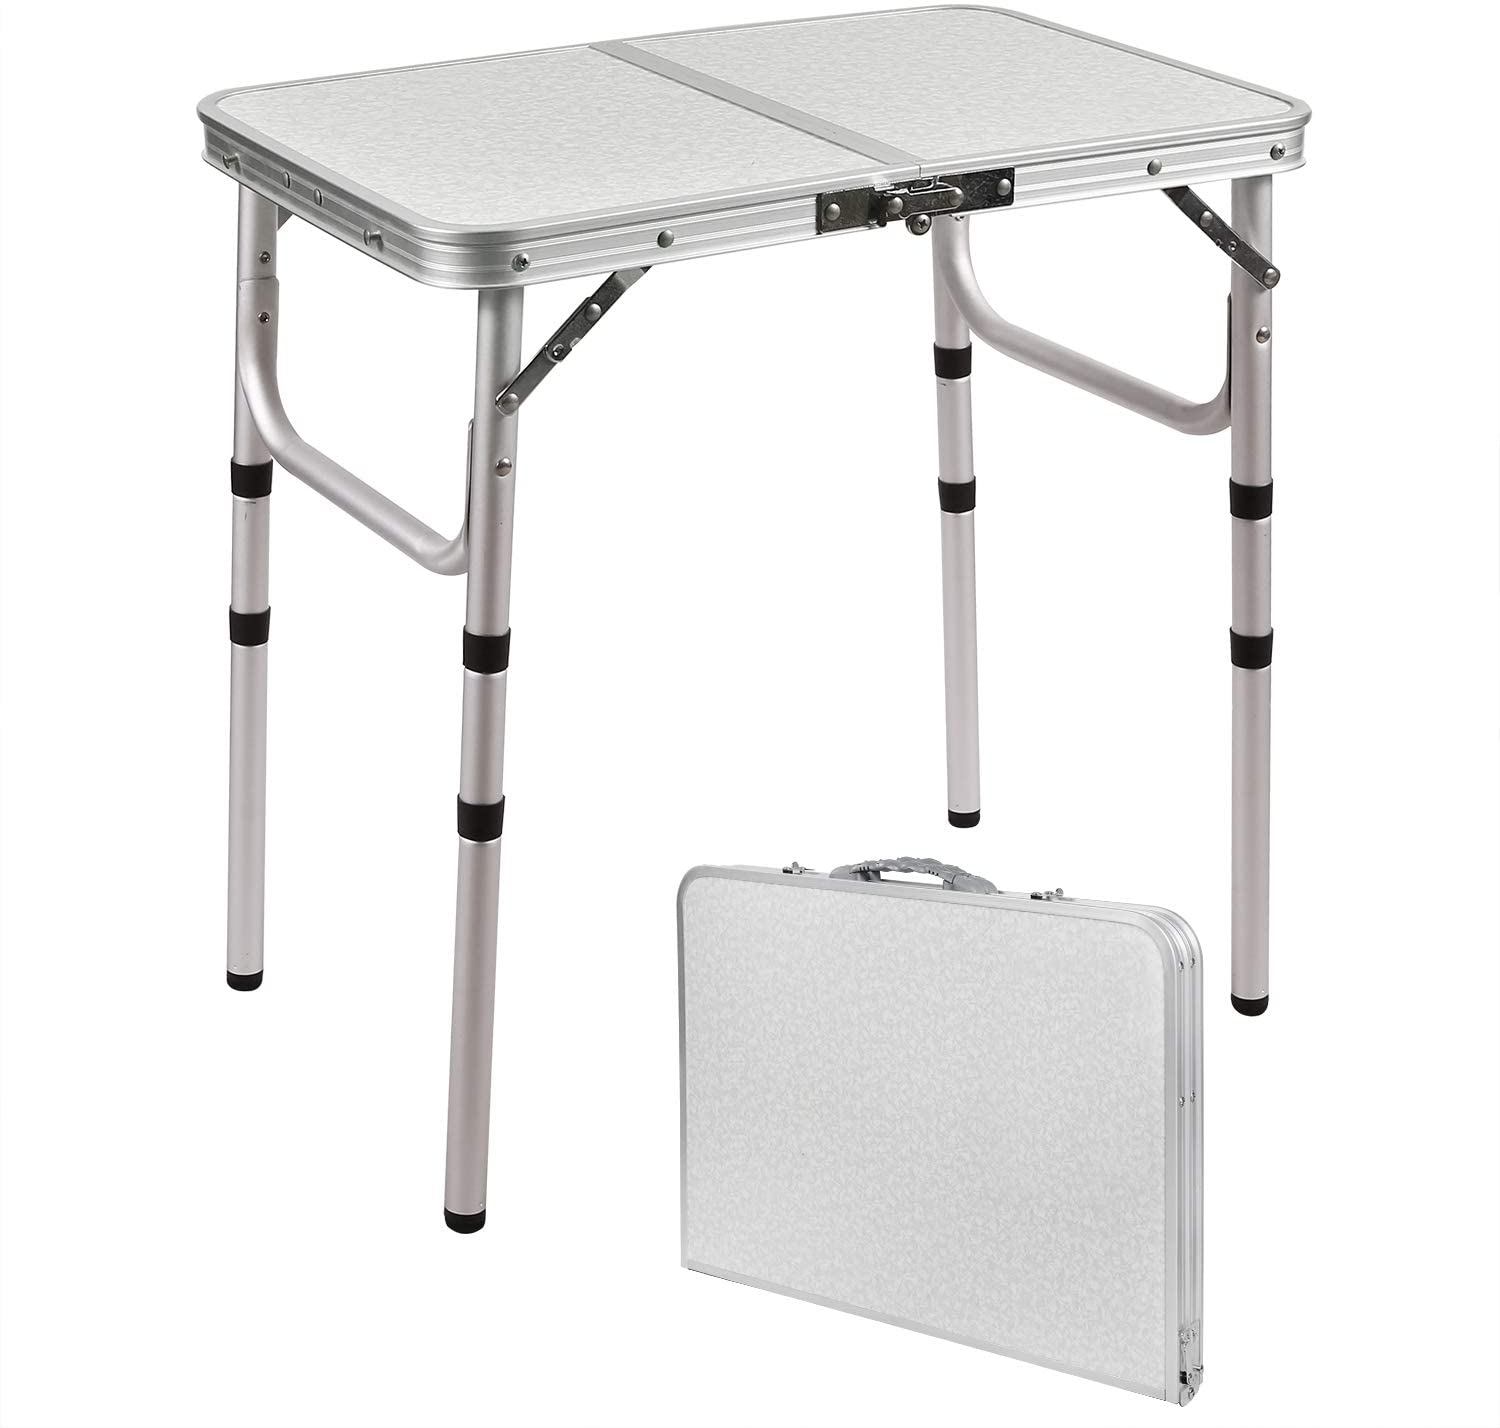 RedSwing Small Folding Table 2 Feet, Small Foldable Table Adjustable Height, Lightweight Portable Aluminum Camping Table, 24x16 Inches, 3 Heights 10''/19''/27''